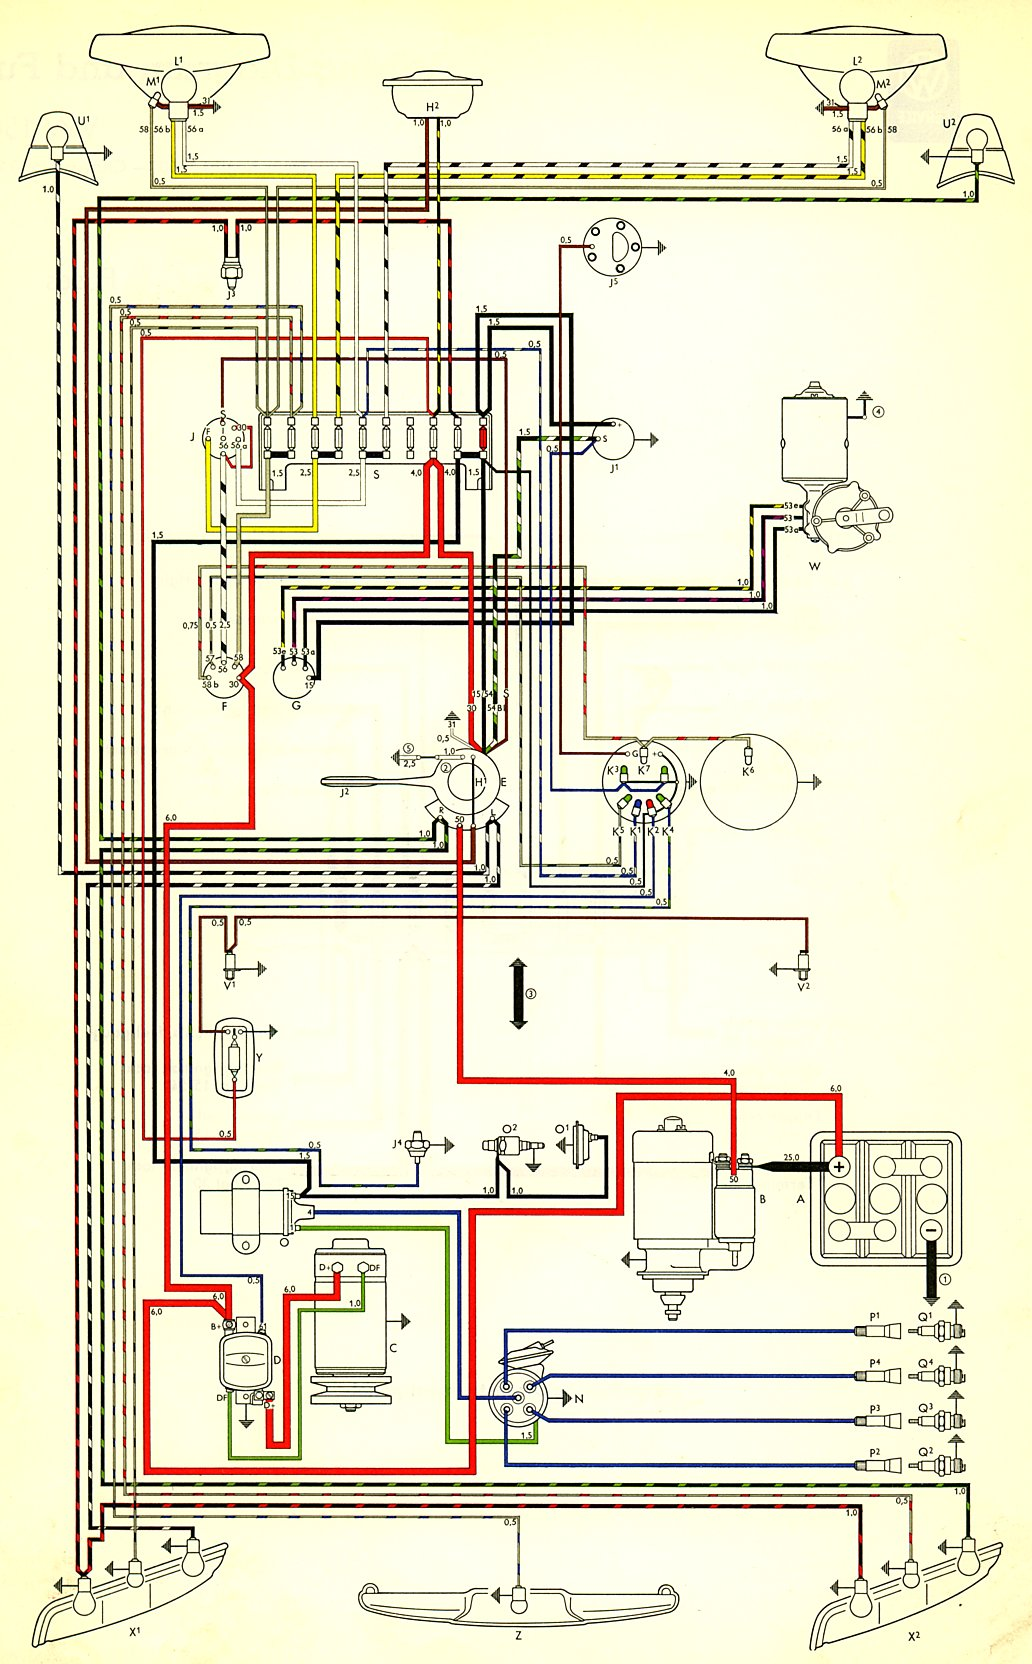 68 Vw Wiring Diagram